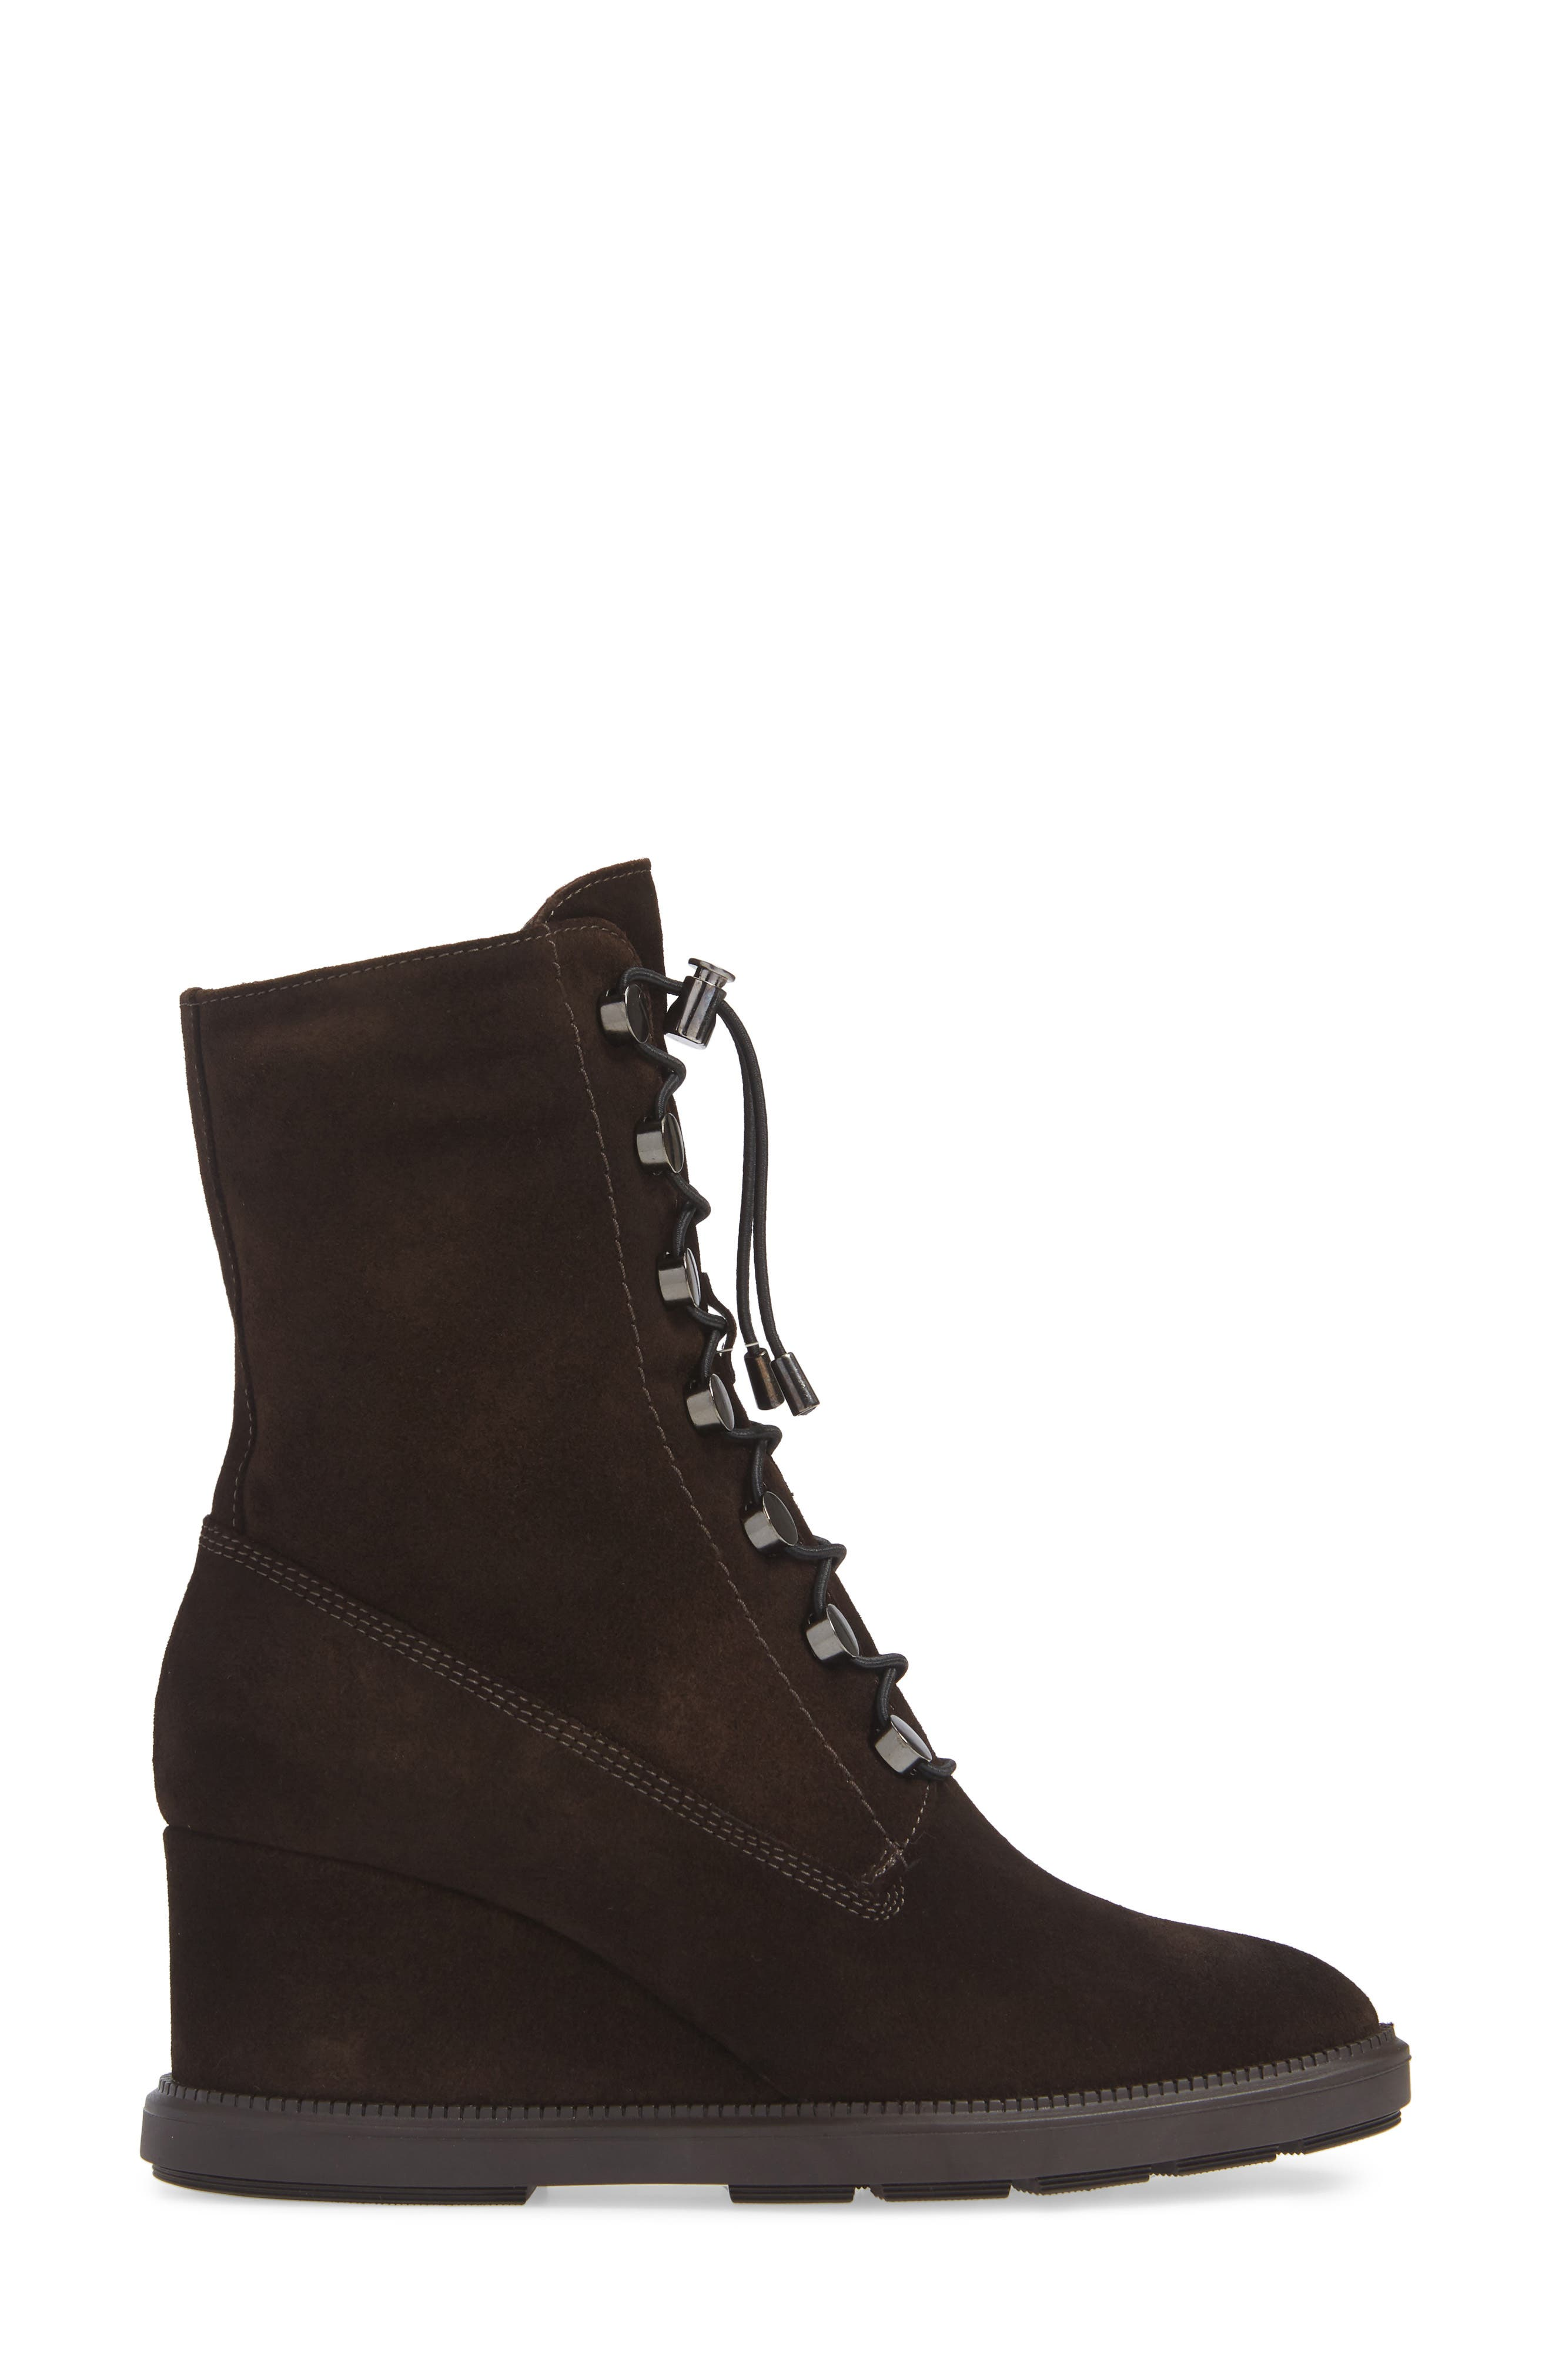 Campbell Wedge Boot,                             Alternate thumbnail 3, color,                             ESPRESSO SUEDE